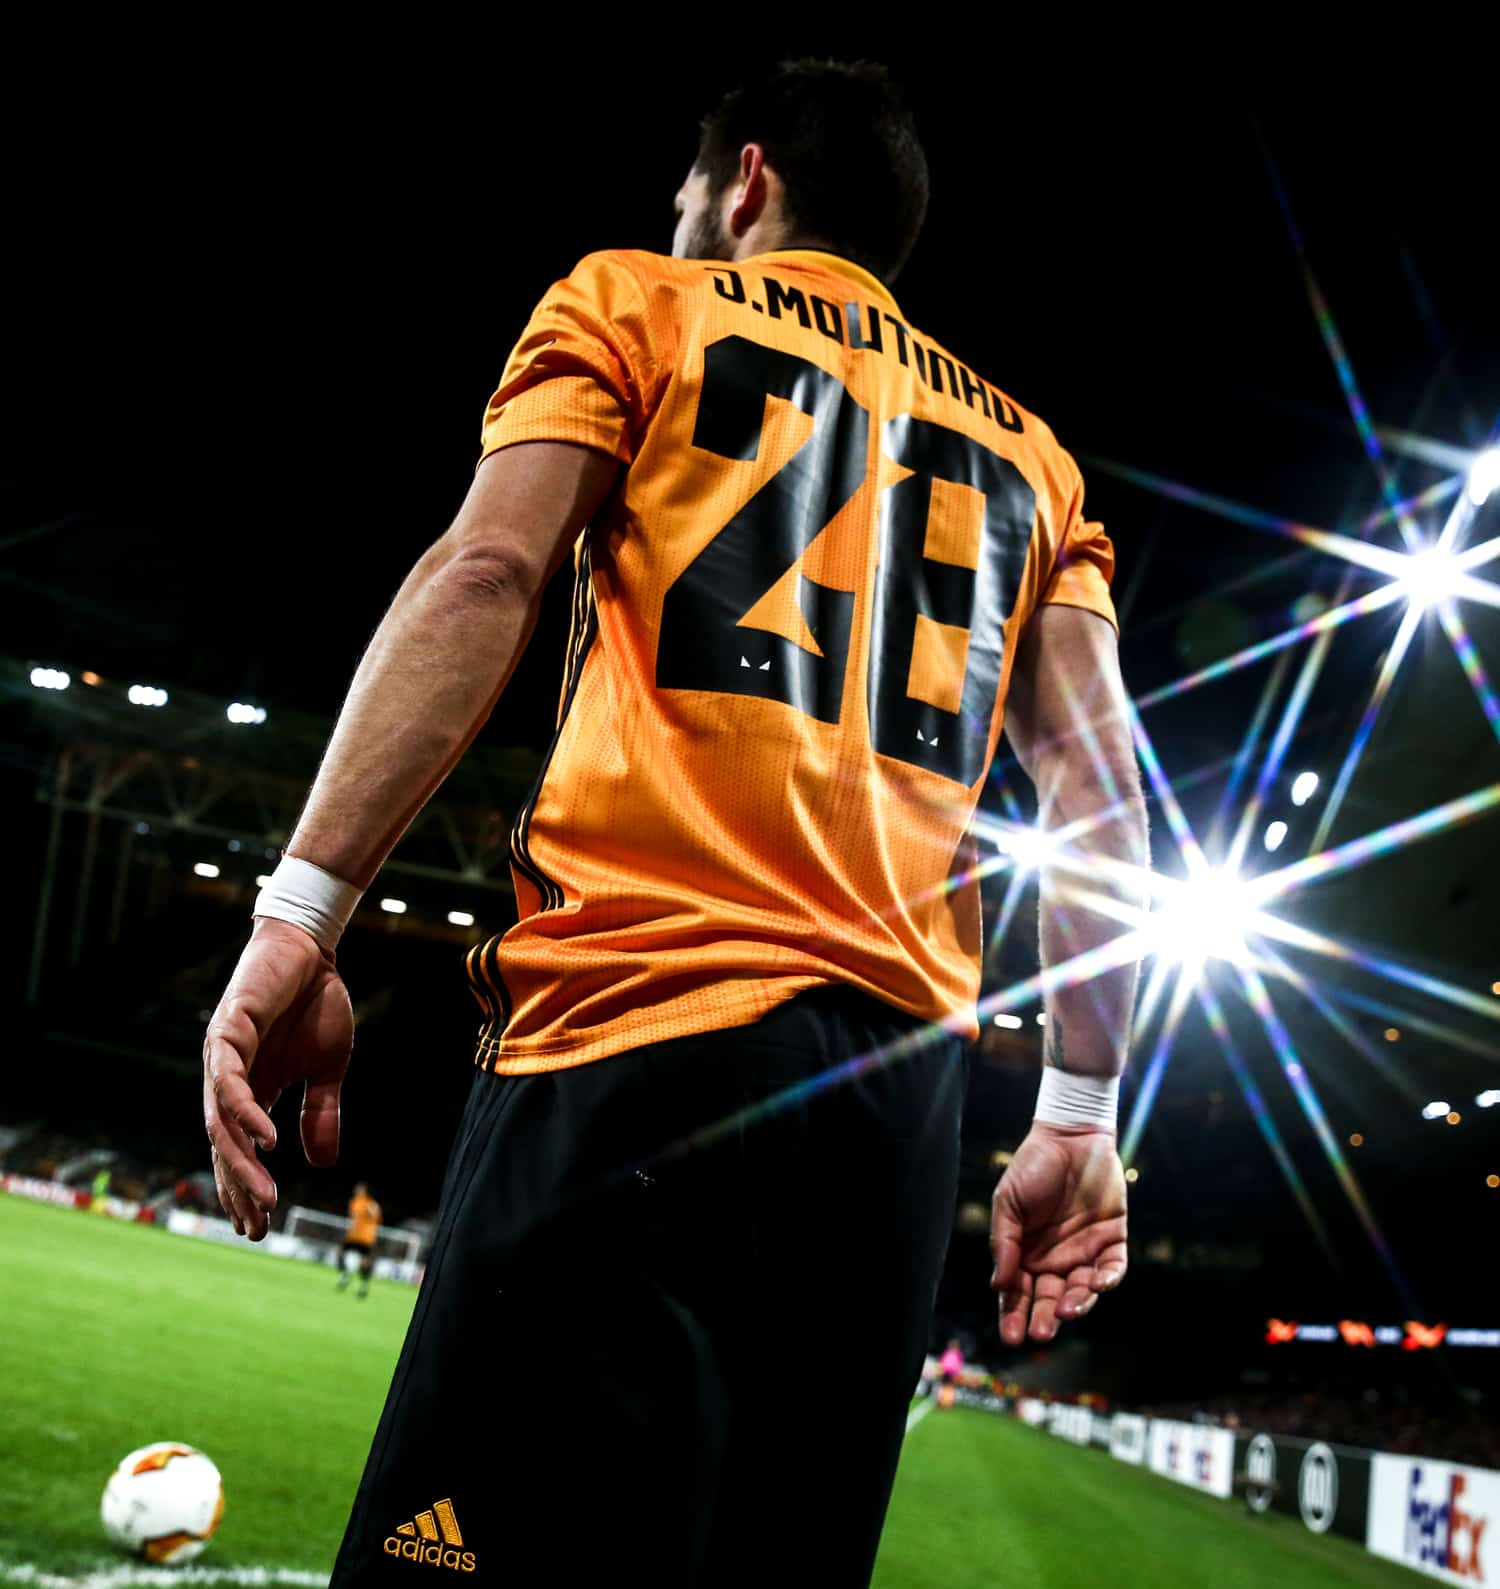 Image of Joao Moutinho at Molineux